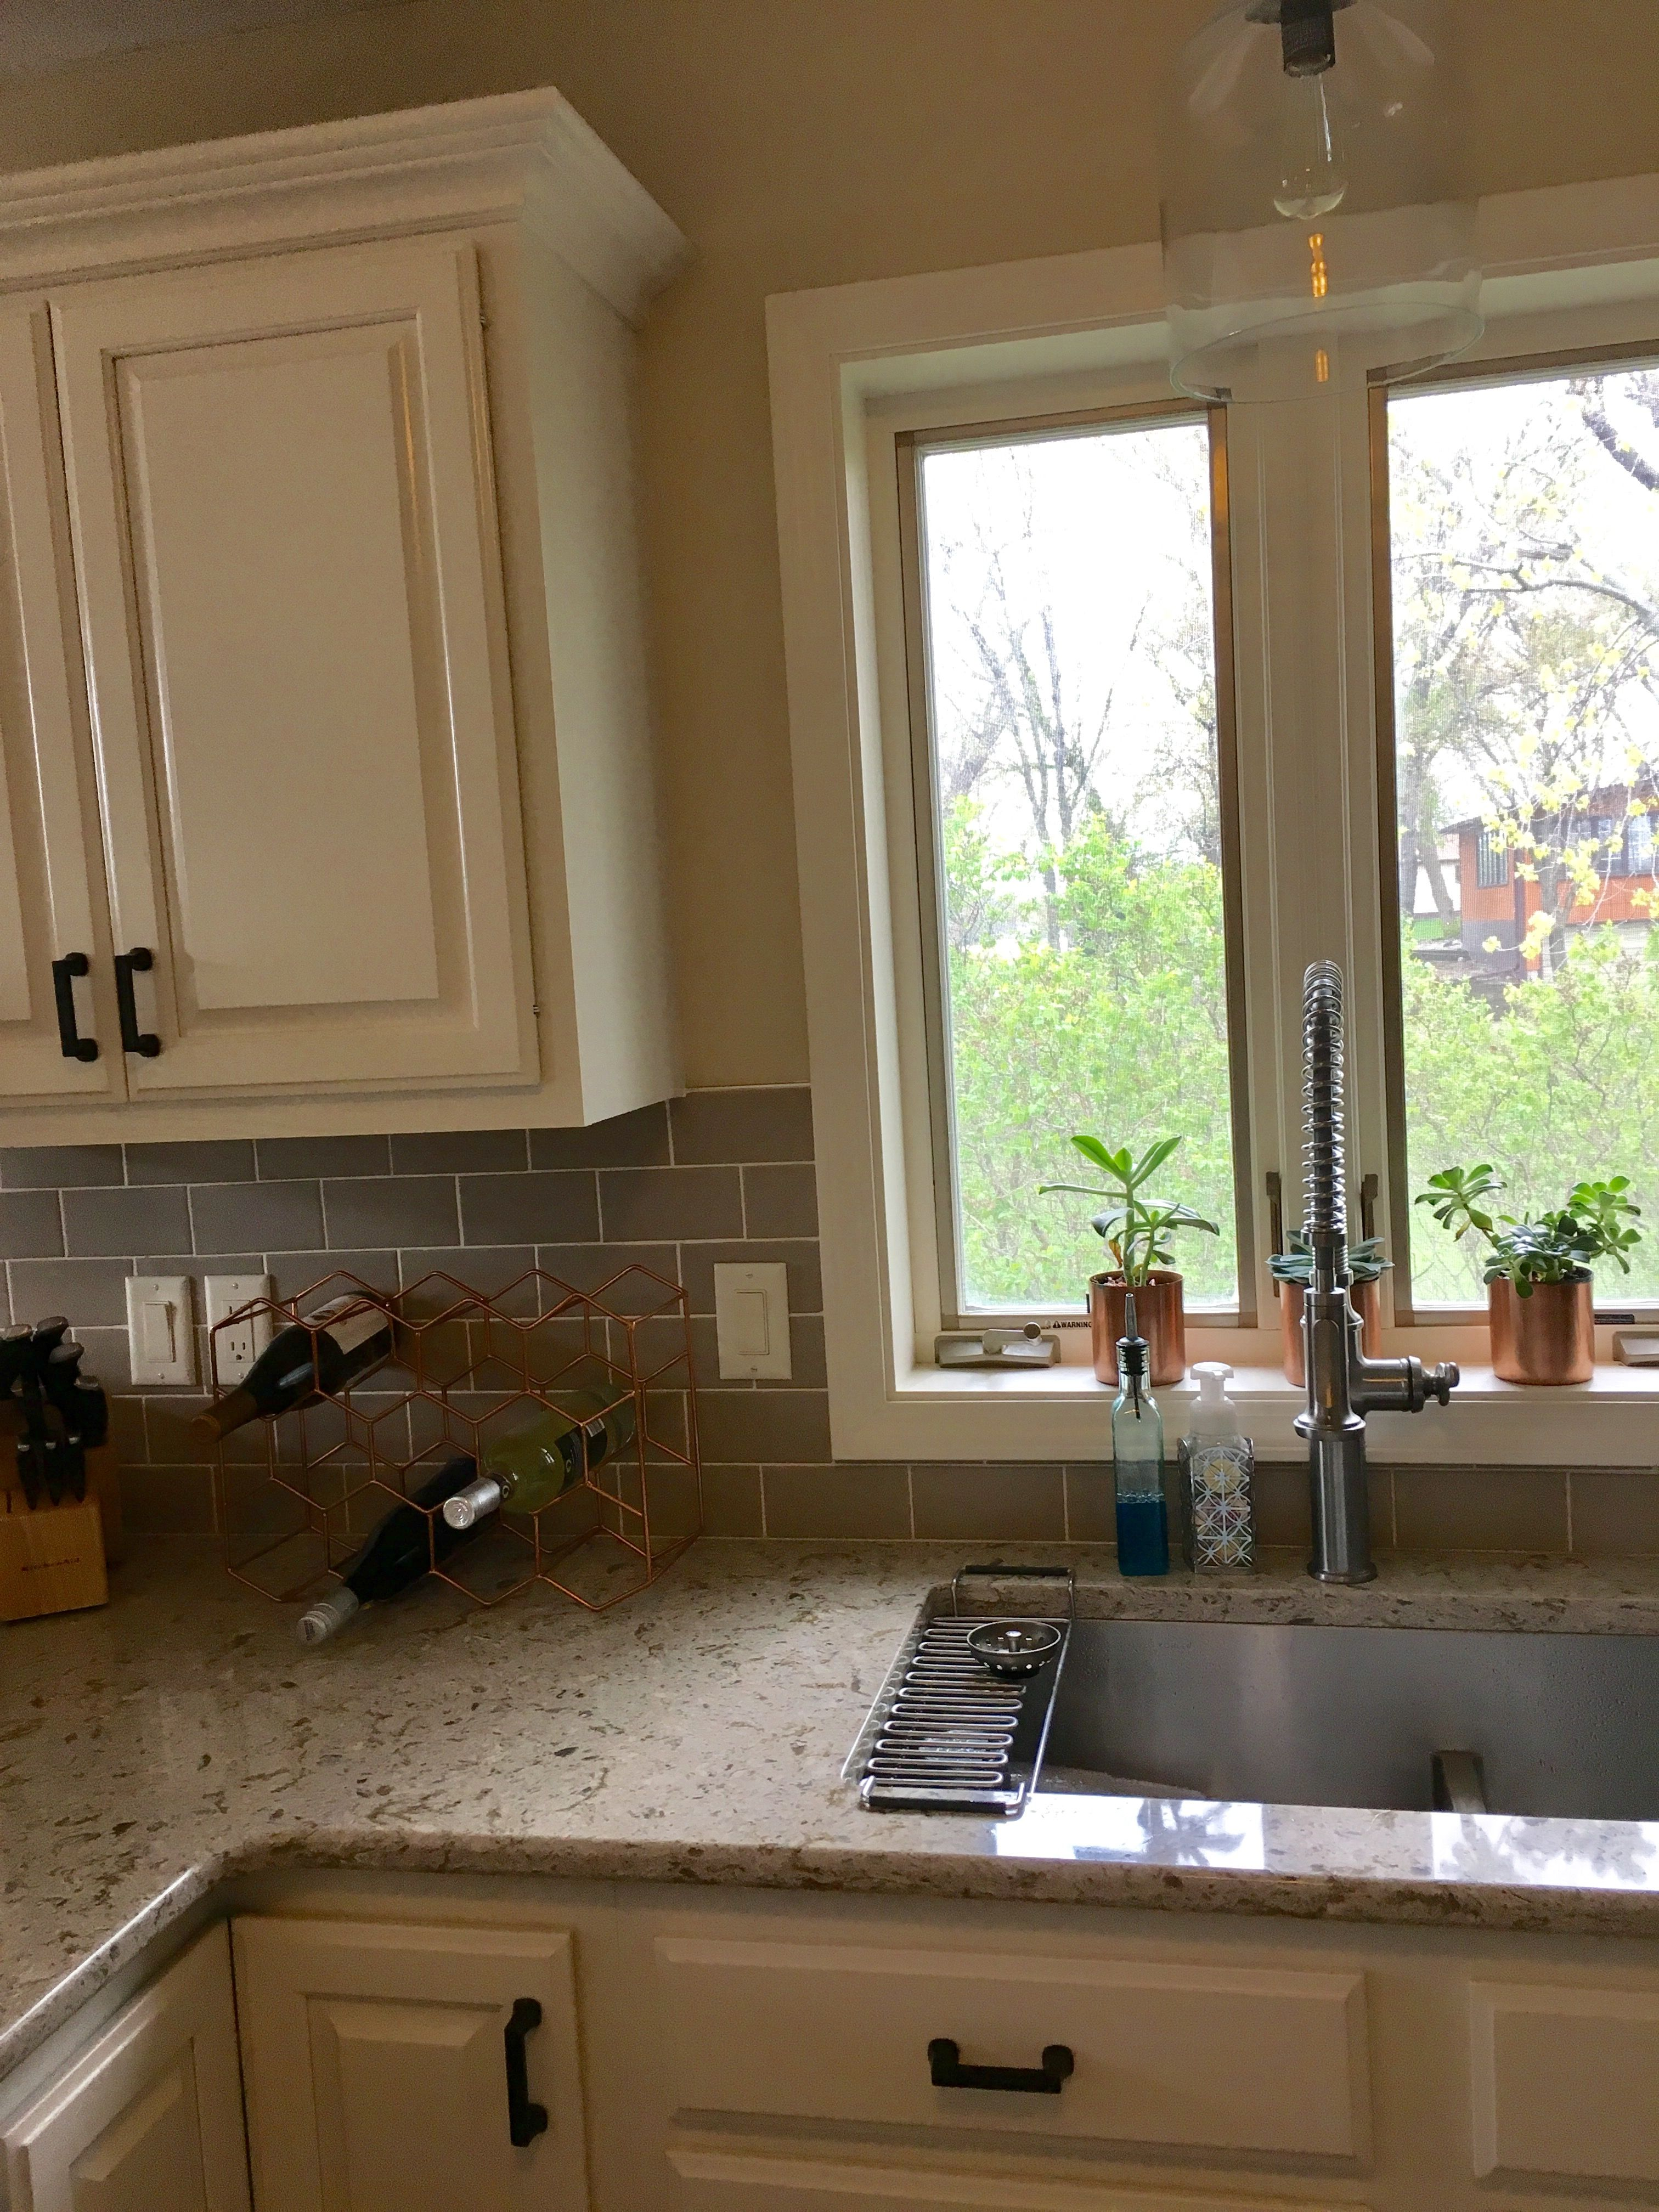 Cambria Windermere Countertop Beige Subway Tile Divine White Painted Cupboards Countertops Kitchen